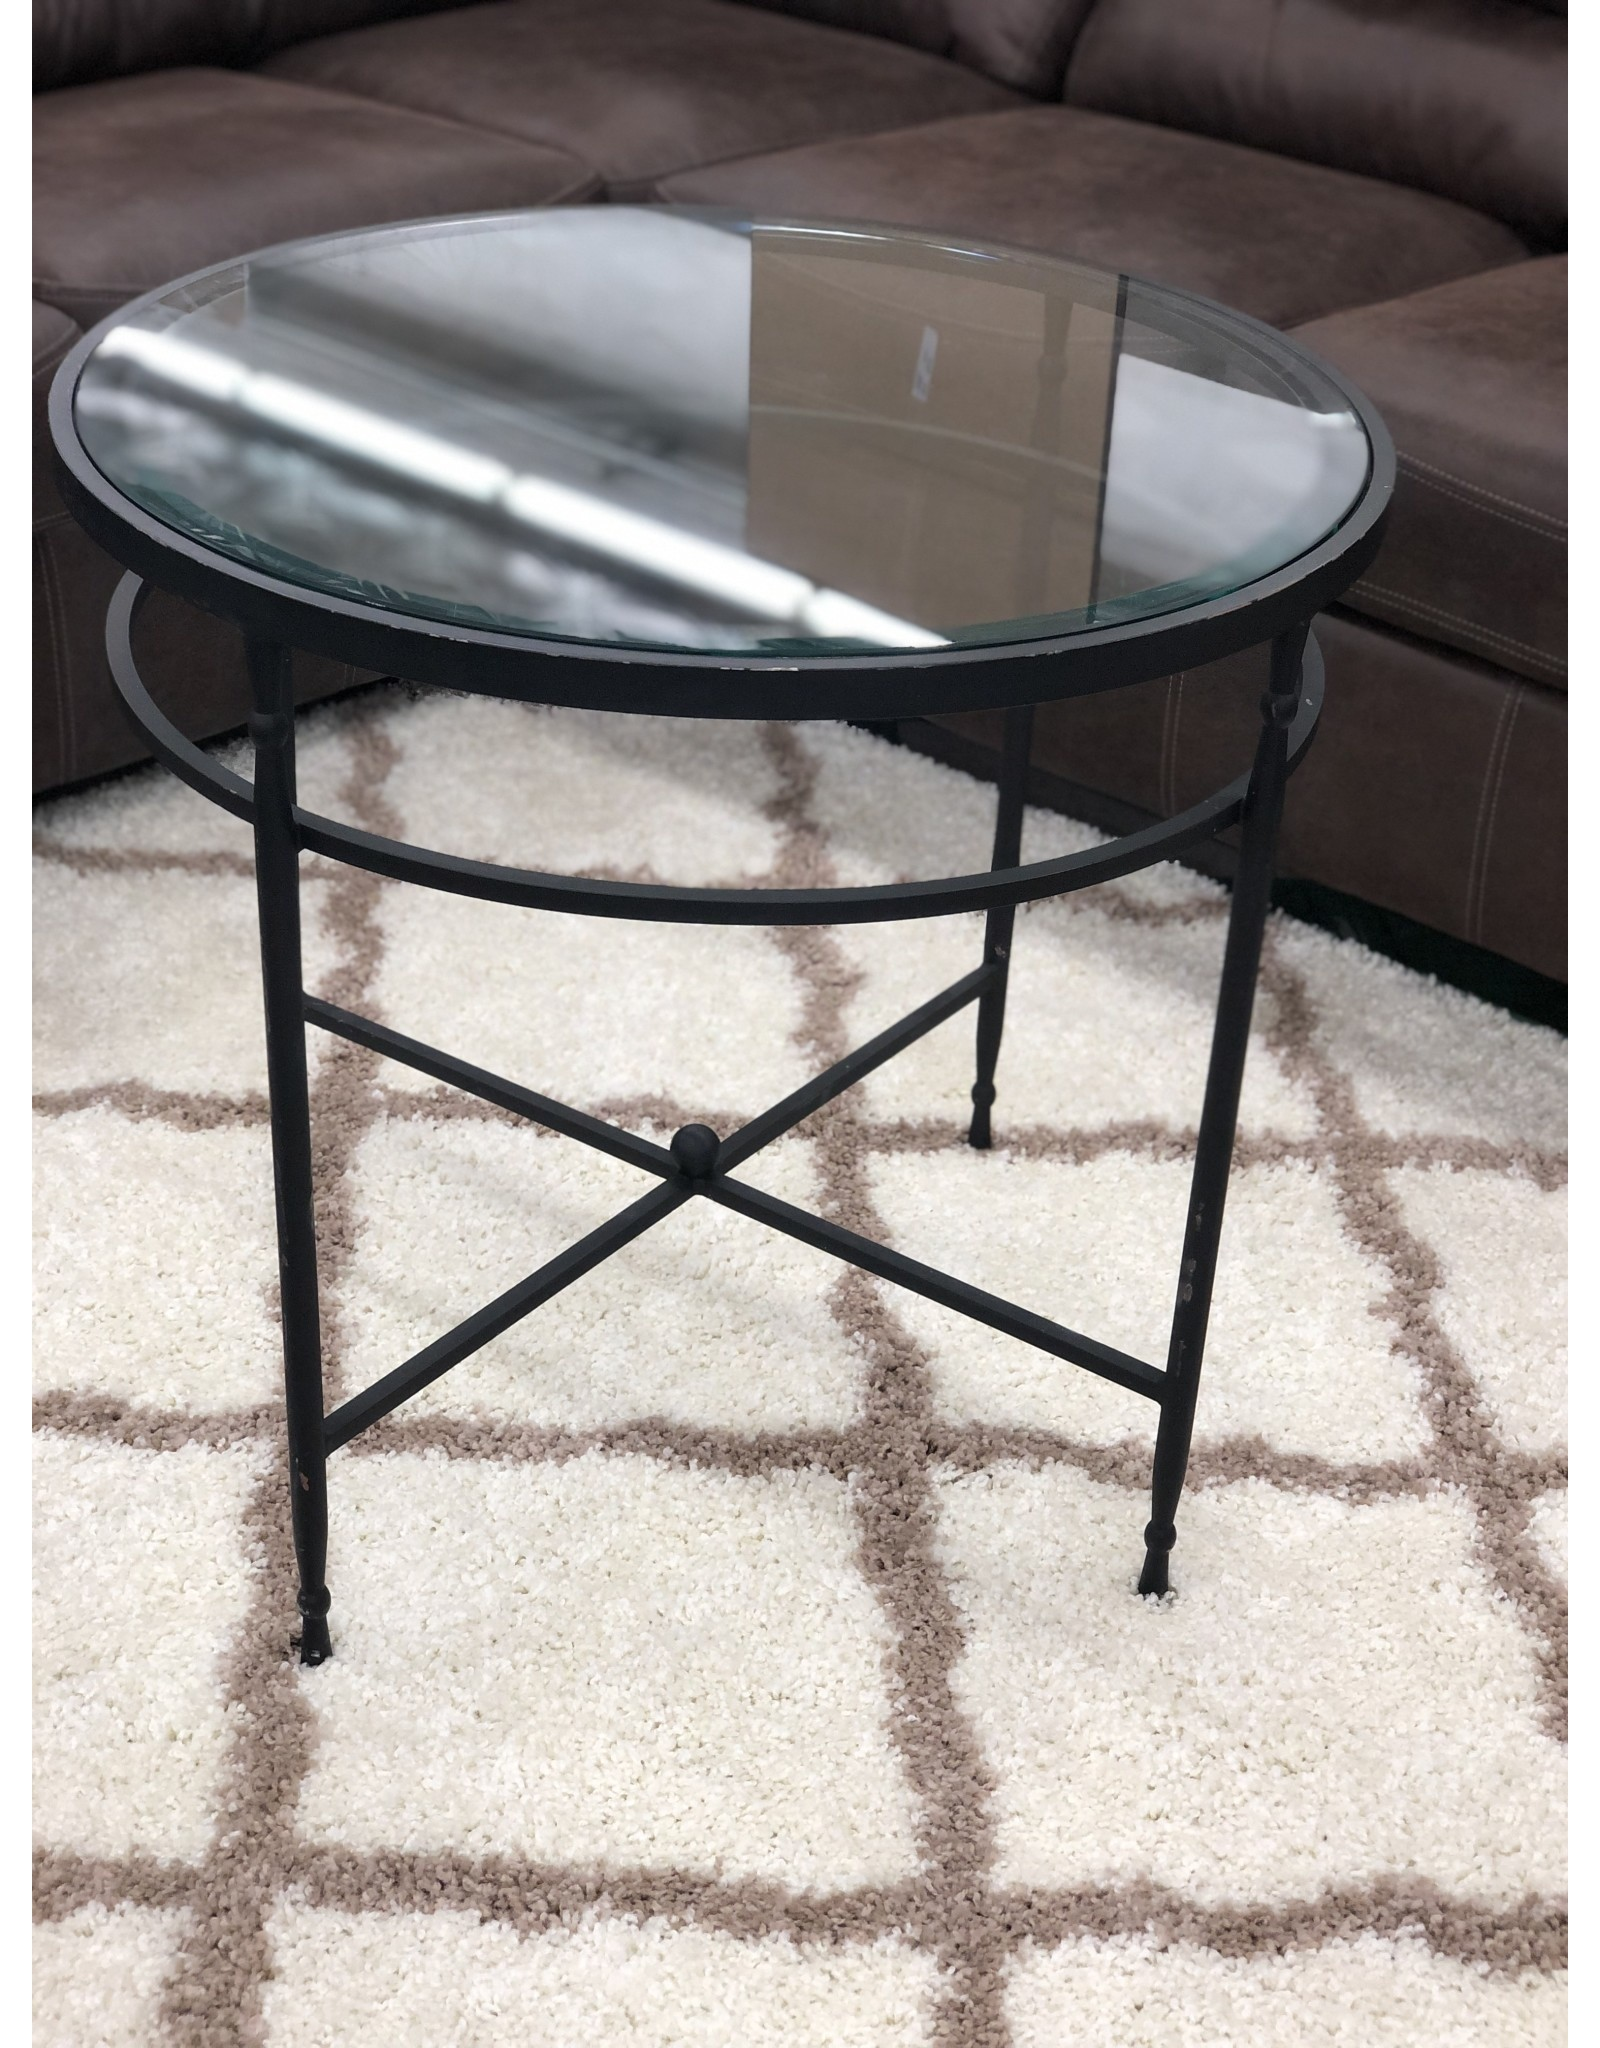 WALDORF- Cast Iron Round Accent Table